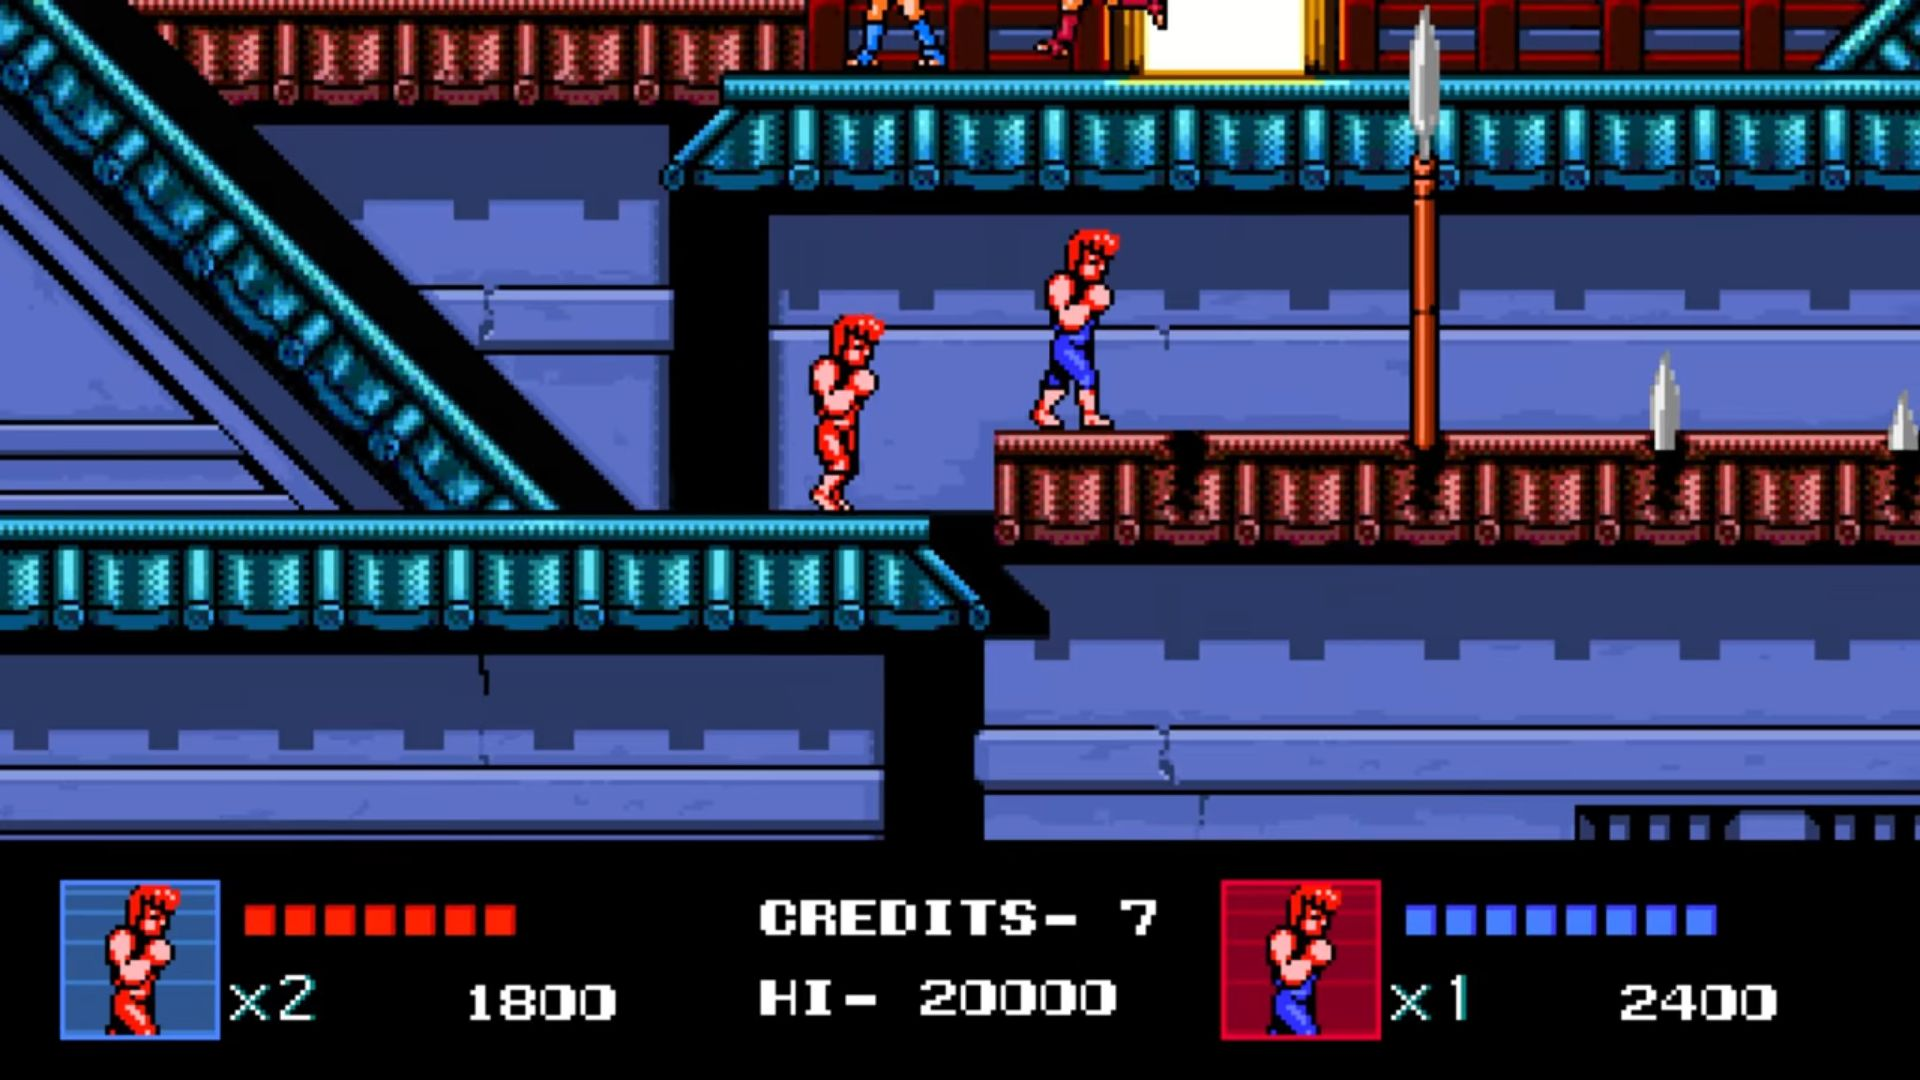 Newcomer Double Dragon Iv S 8 Bit Graphics Prey On Your Nostalgia